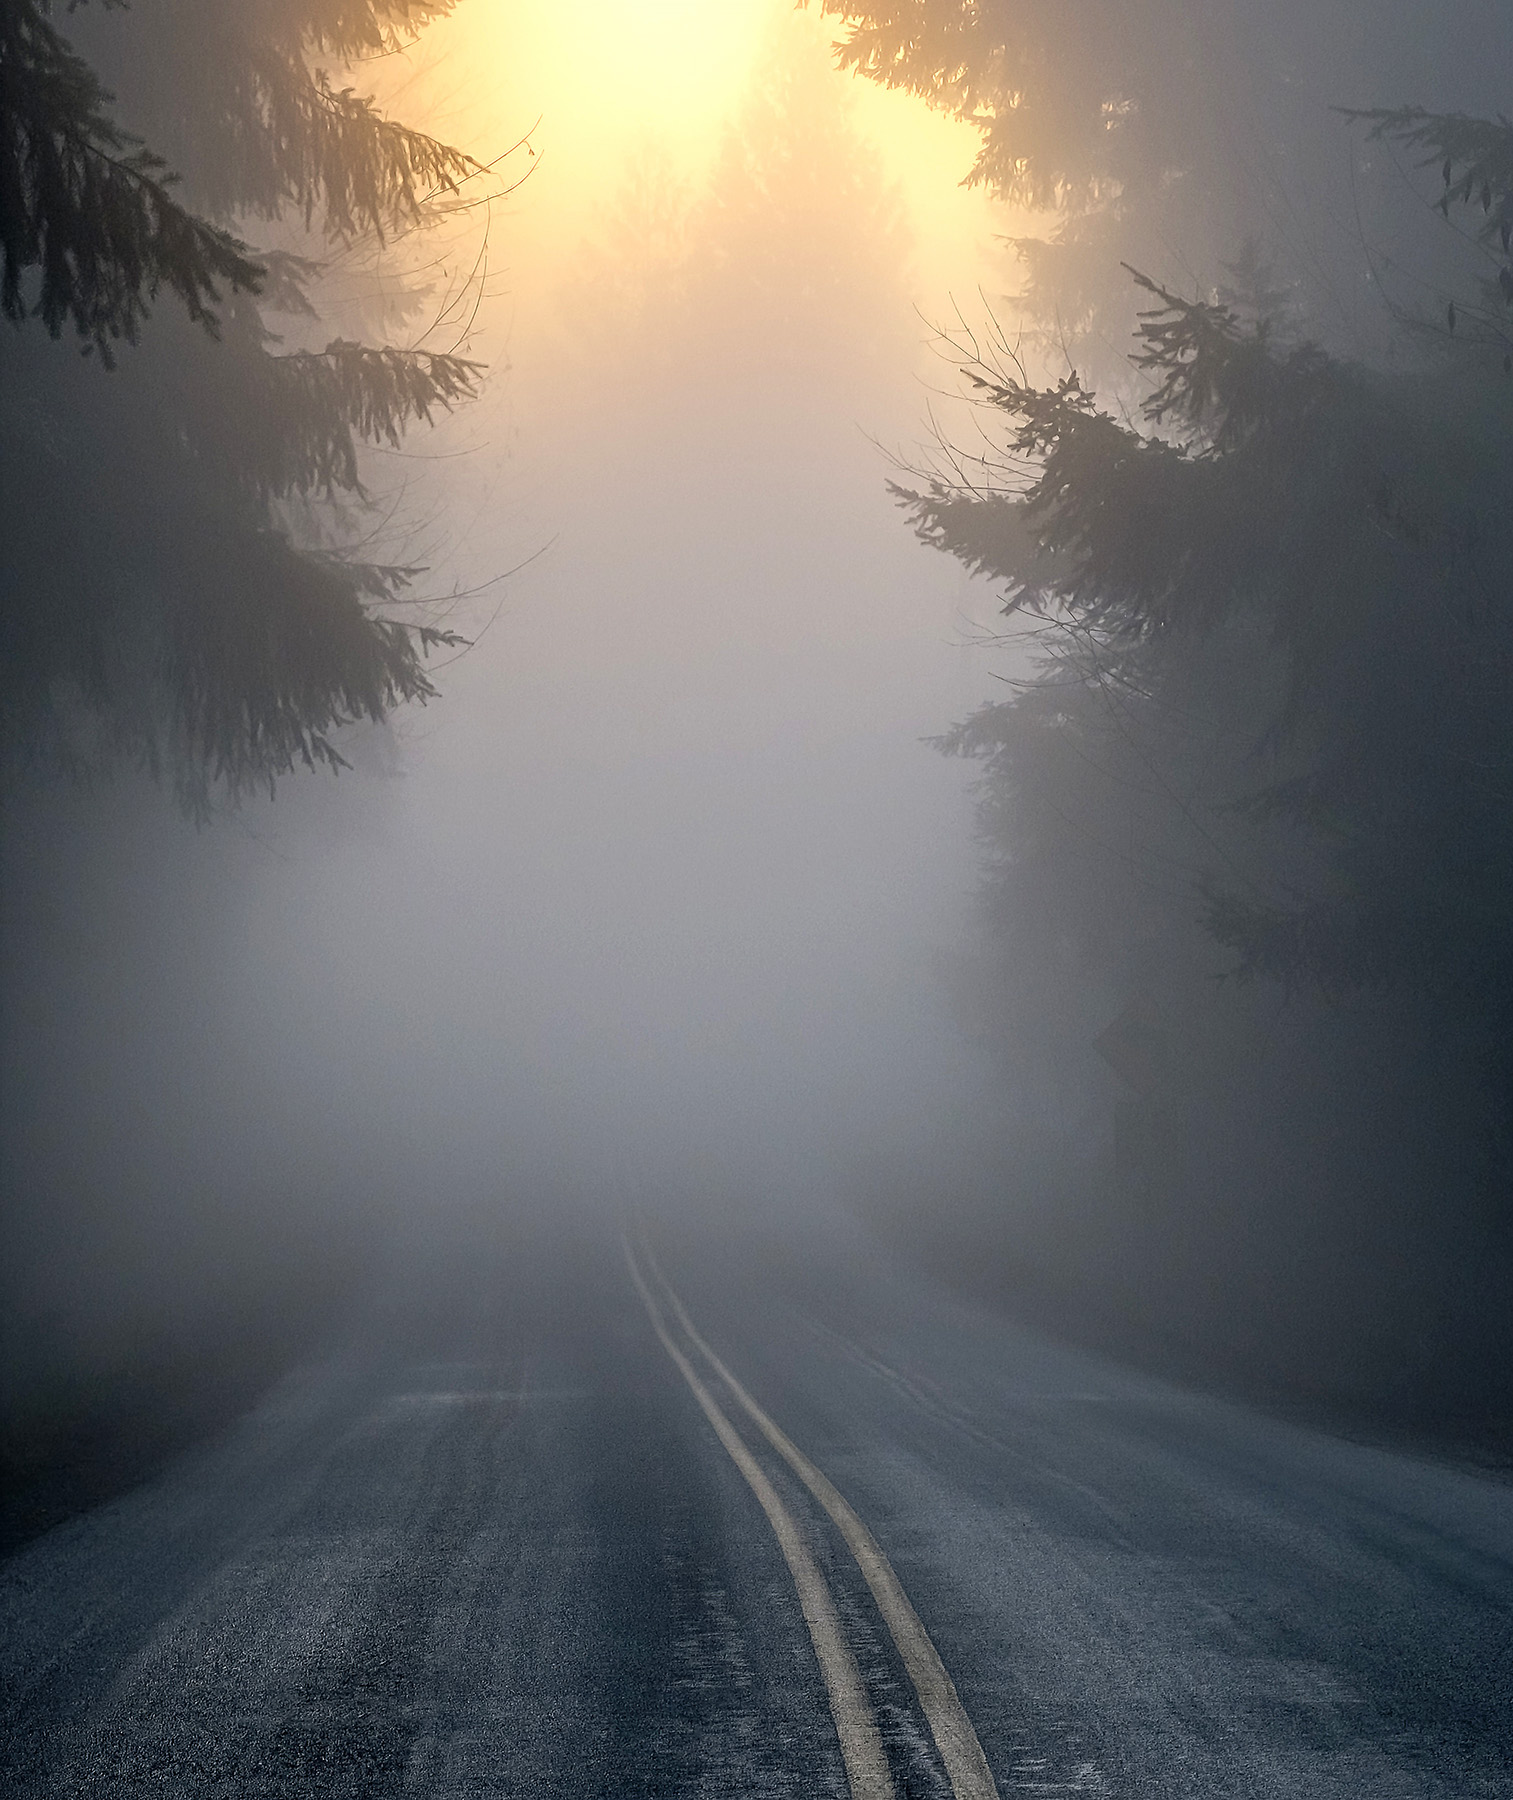 Road with trees and fog